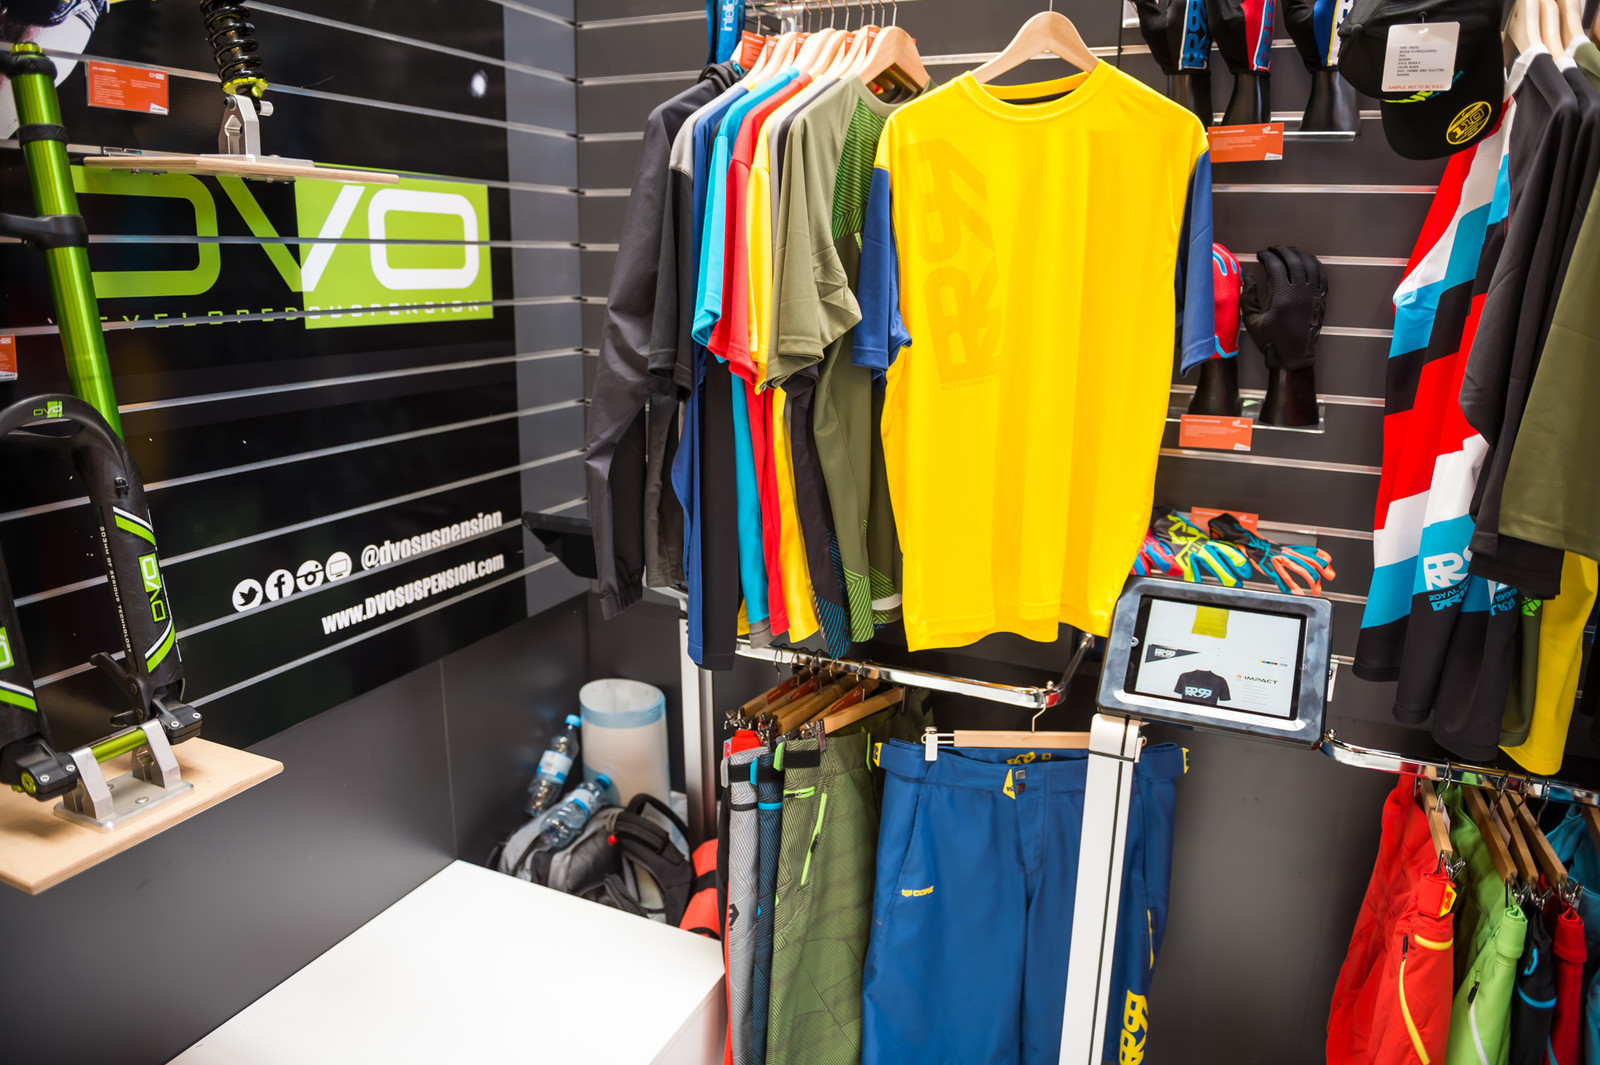 Royal Core Jersey and Short - EUROBIKE - 2017 Mountain Bike Apparel and Protective Gear - Mountain Biking Pictures - Vital MTB